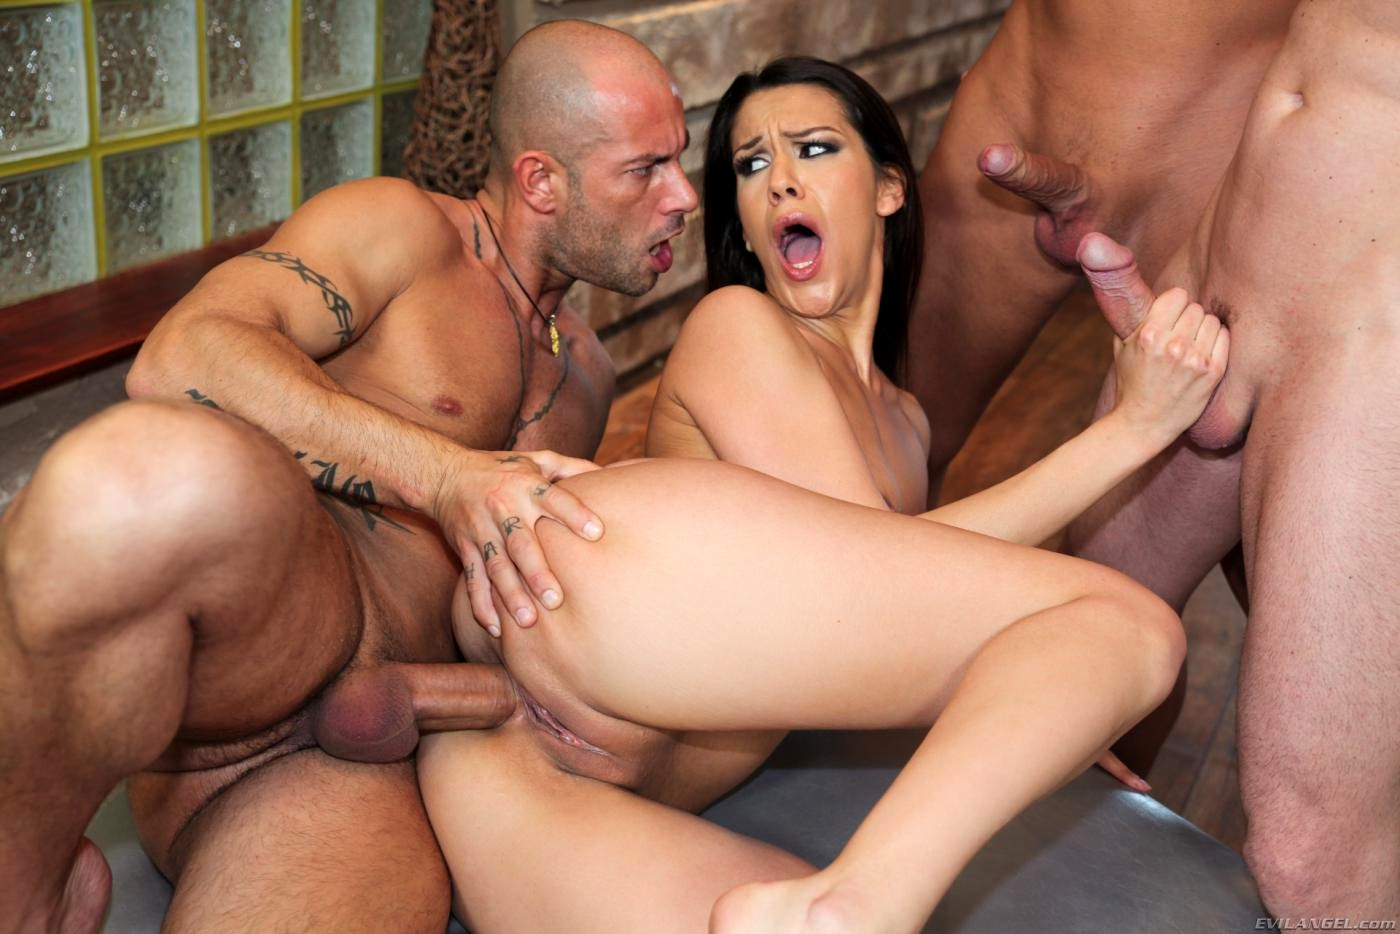 free-long-movies-pornstar-fucks-gangbang-mutual-masturbation-orgasm-video